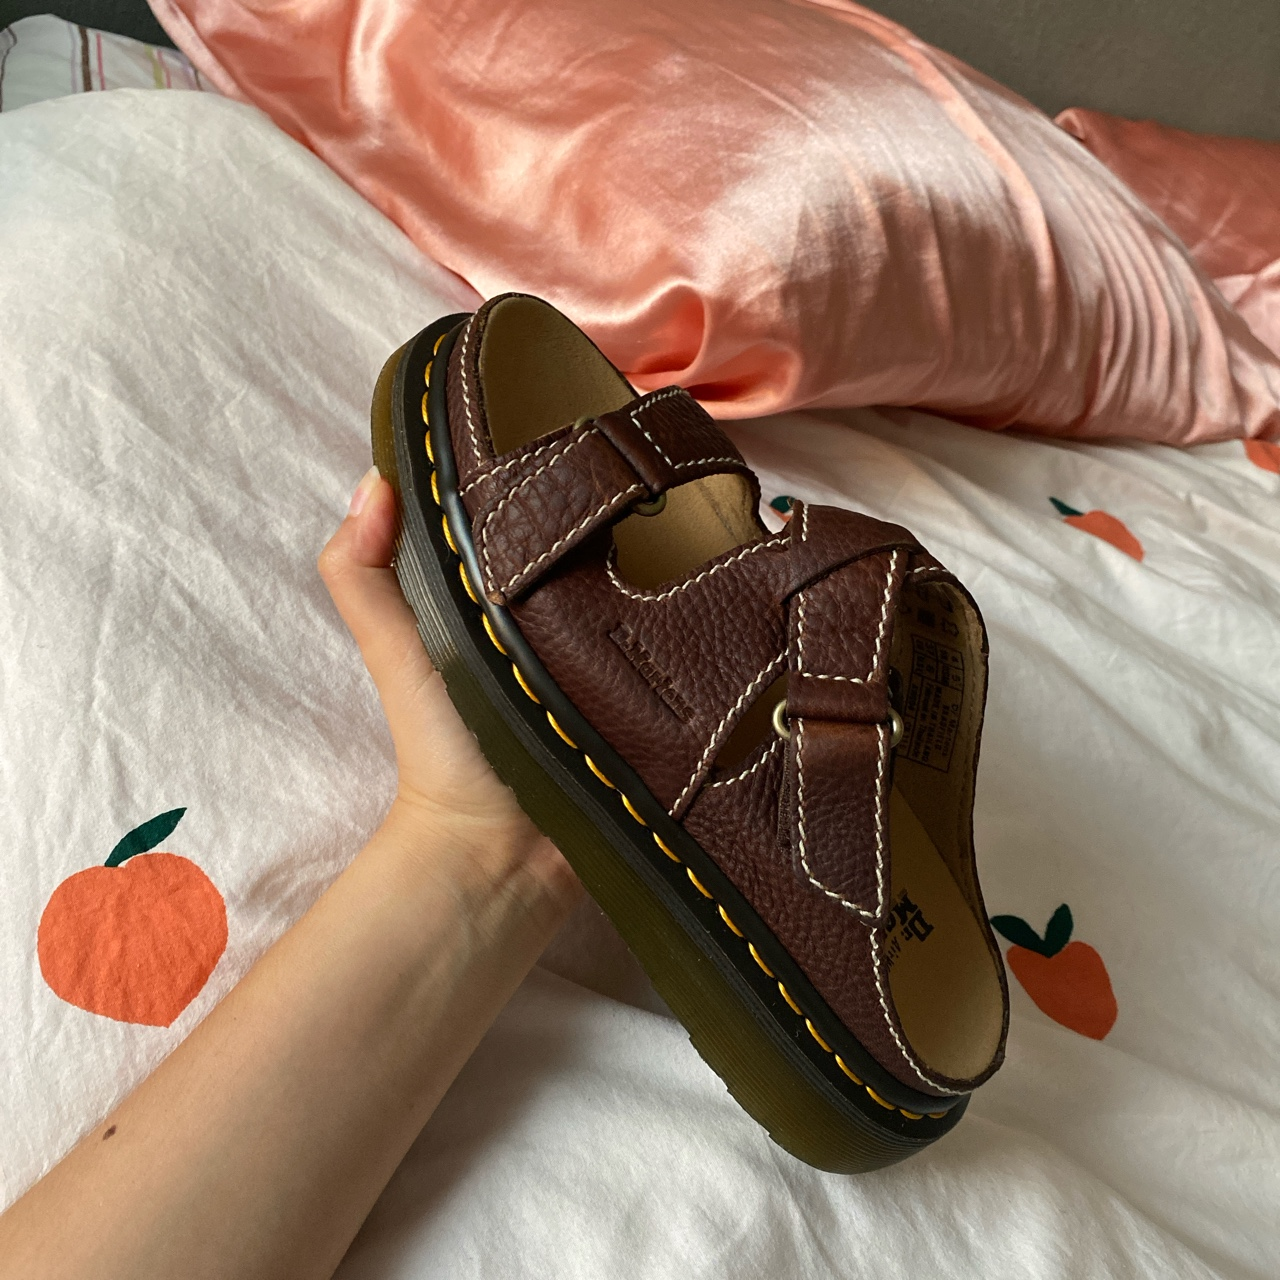 Product Image 1 - Dr martens sandals! The ultimate